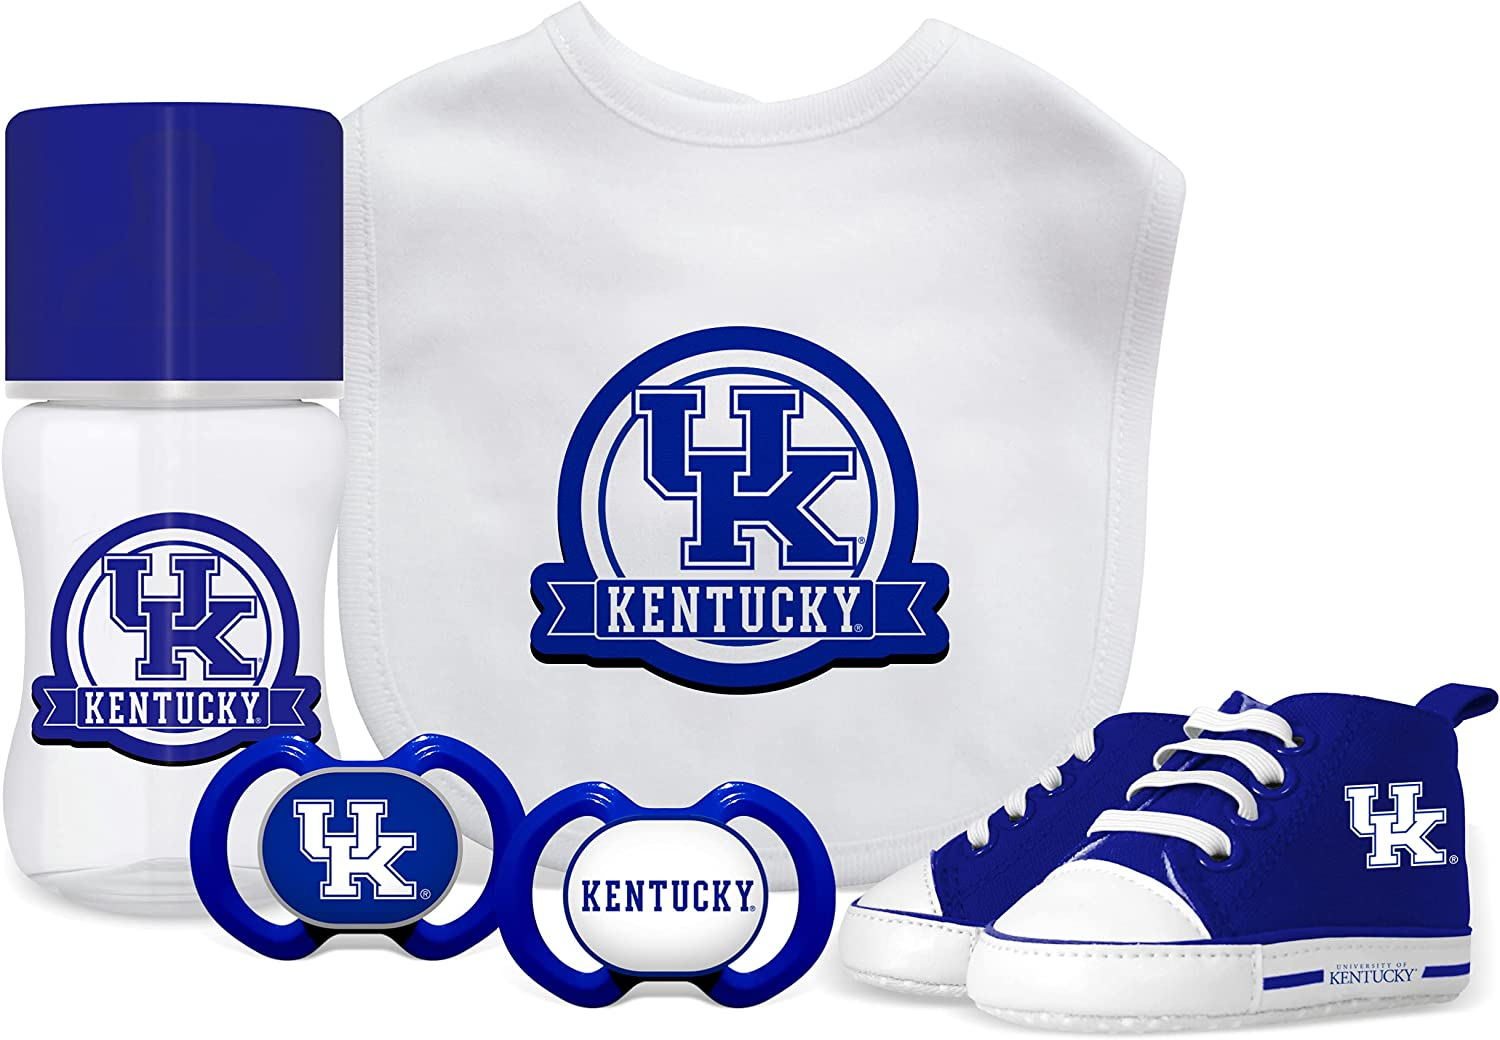 NCAA Kentucky Wildcats Infant And Mail order Sports Apparel Toddler High order Fan